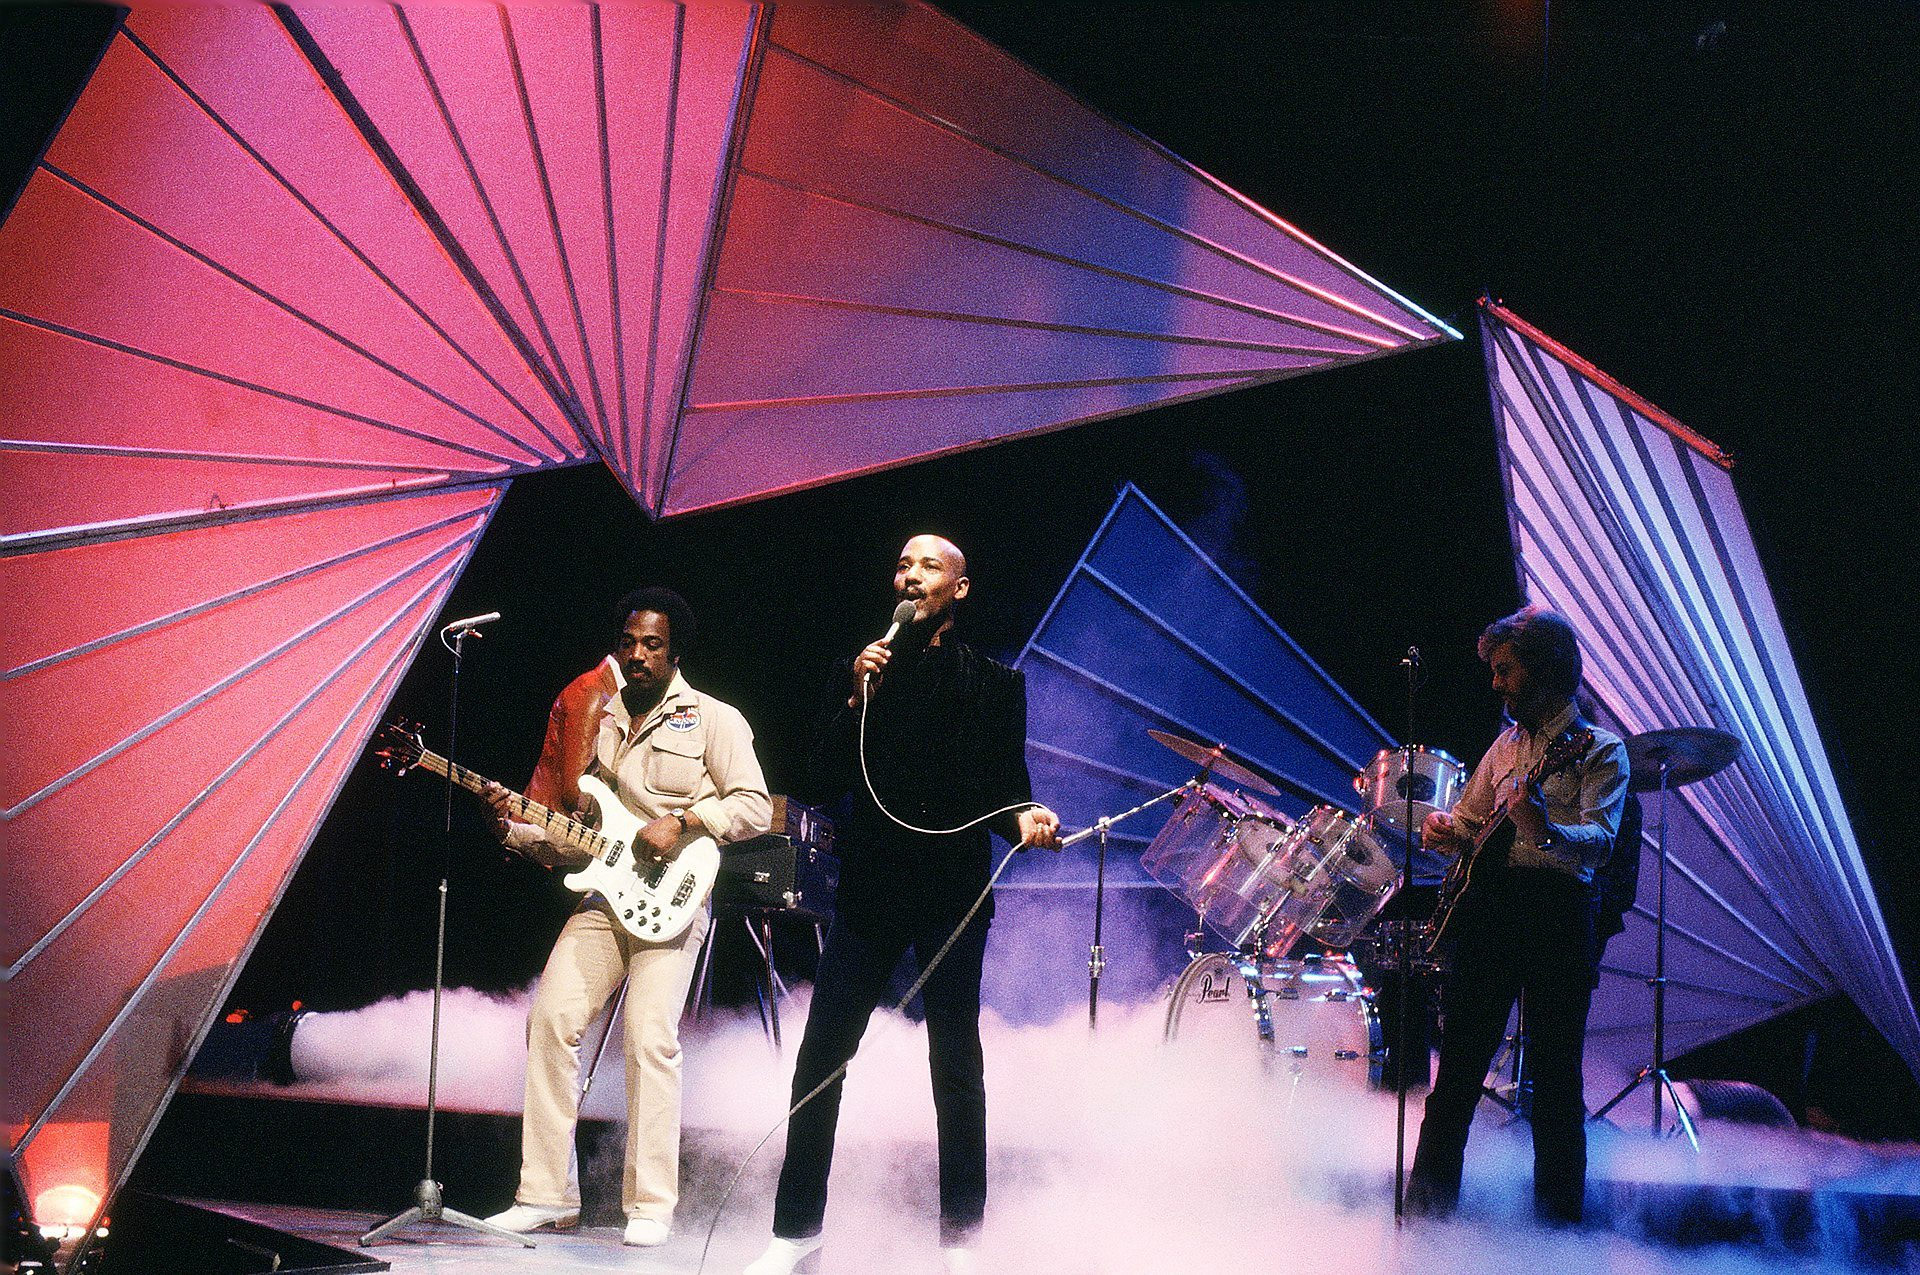 hot The Best Of 1980s Music In Pictures: Part Two